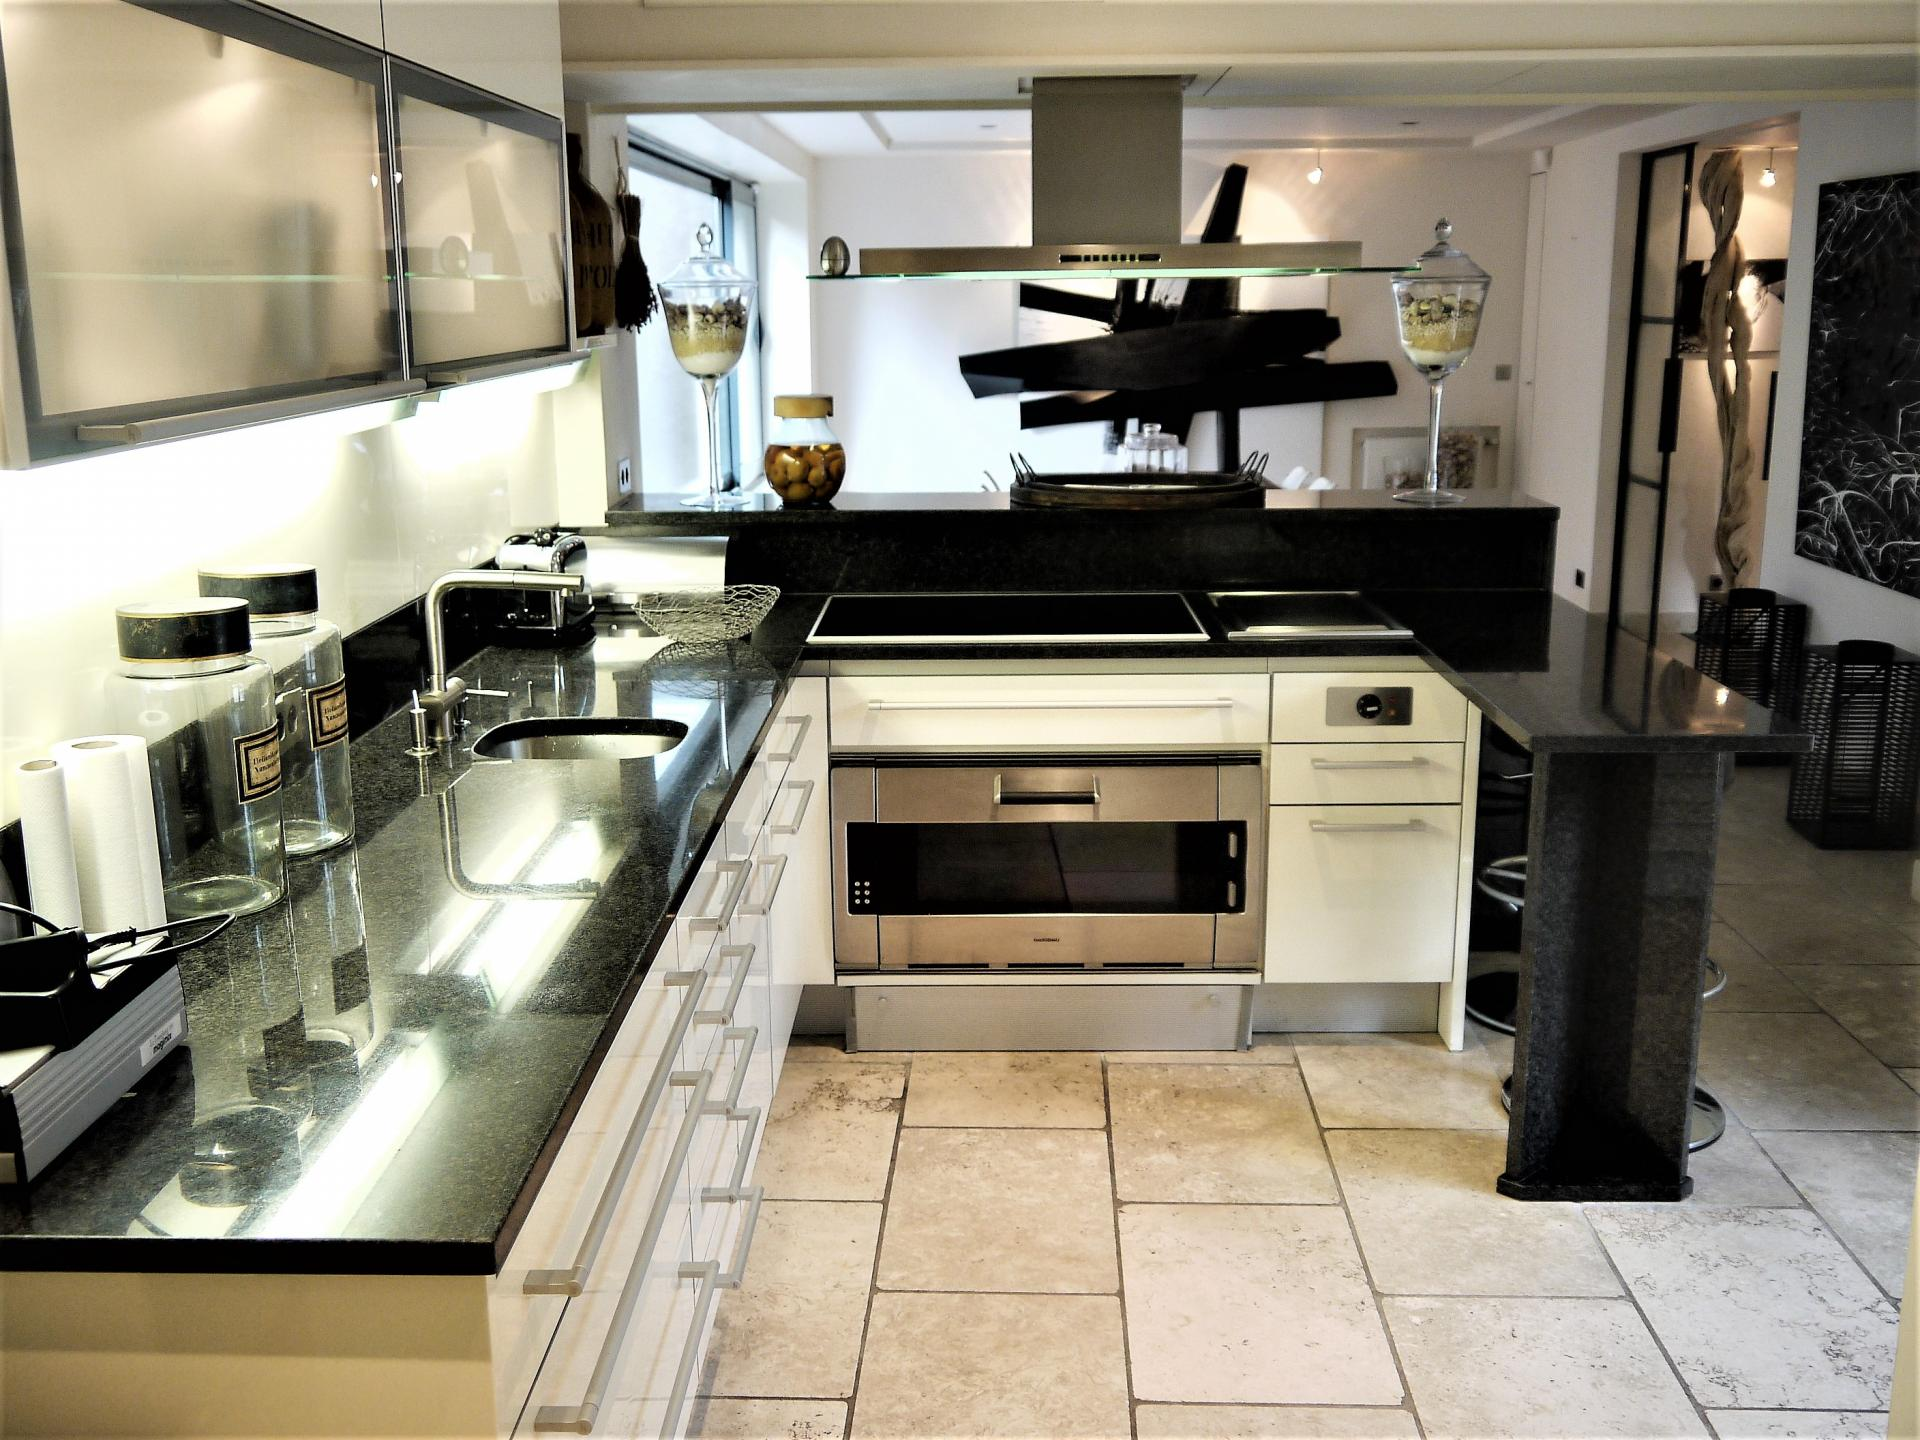 THE LOVELY OPEN KITCHEN OF VILLA THE TOWER